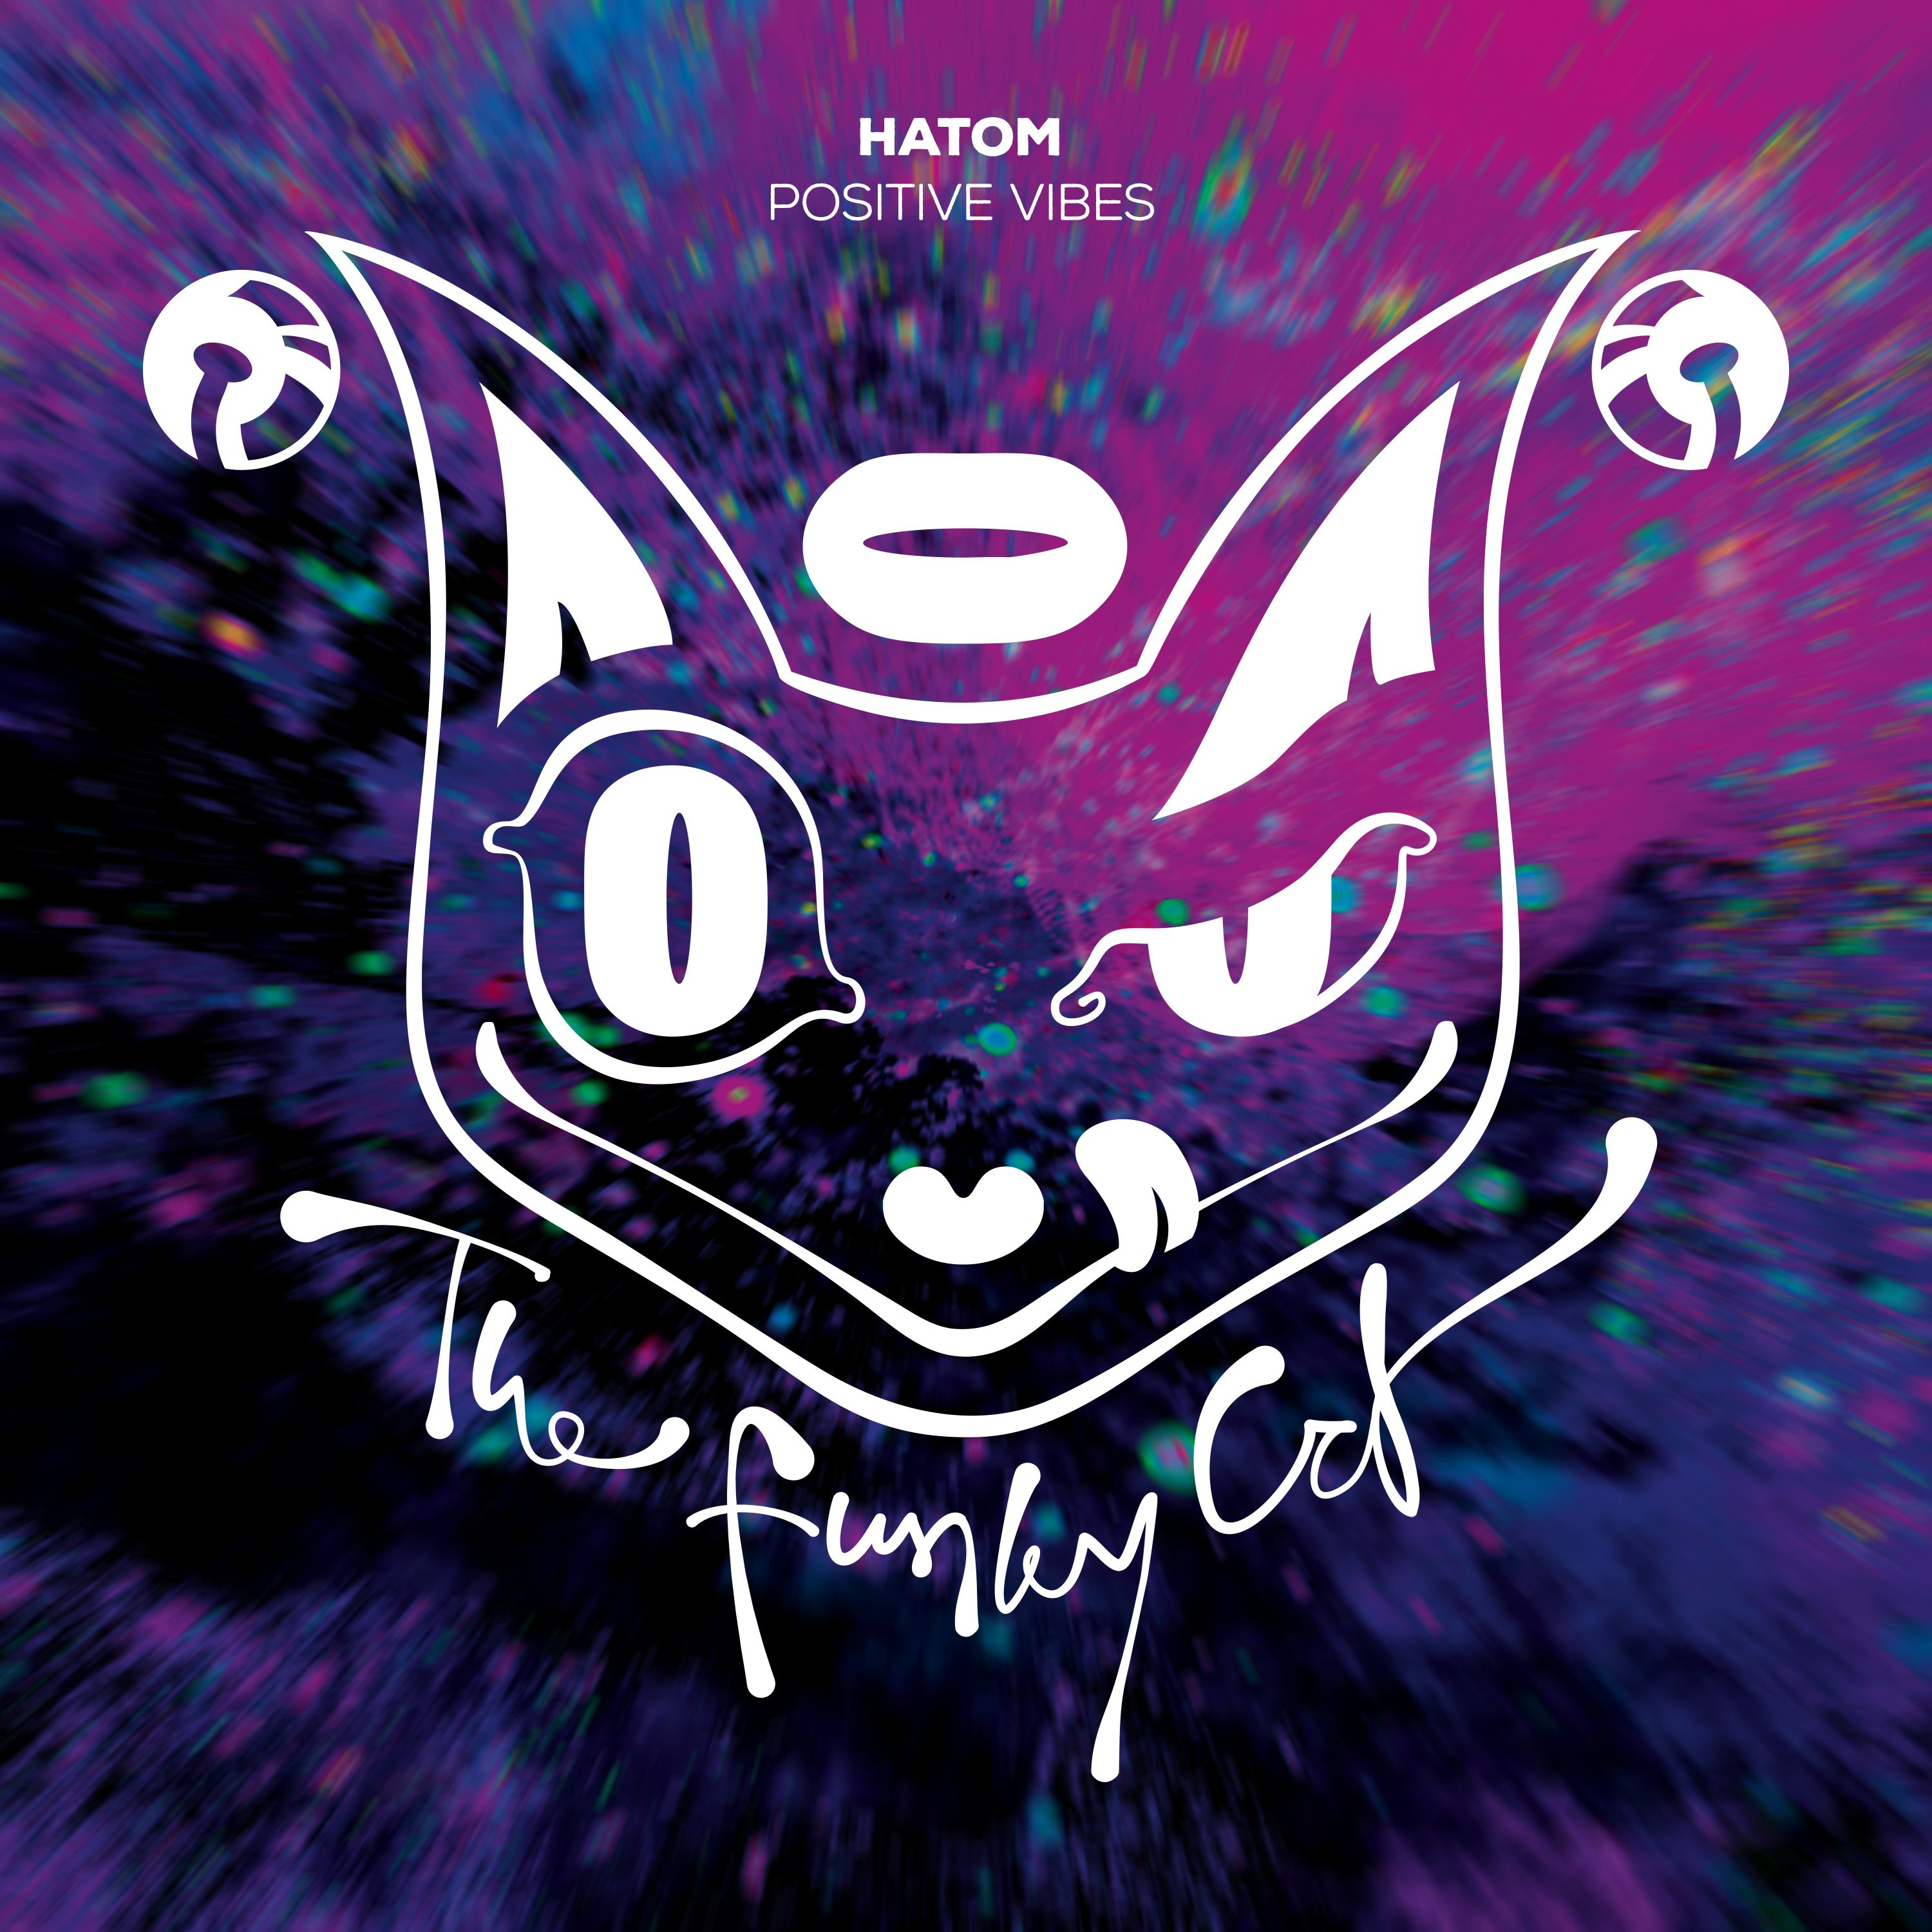 Hatom - Positive Vibes [THE FUNKY CAT RECORDINGS] CATID012